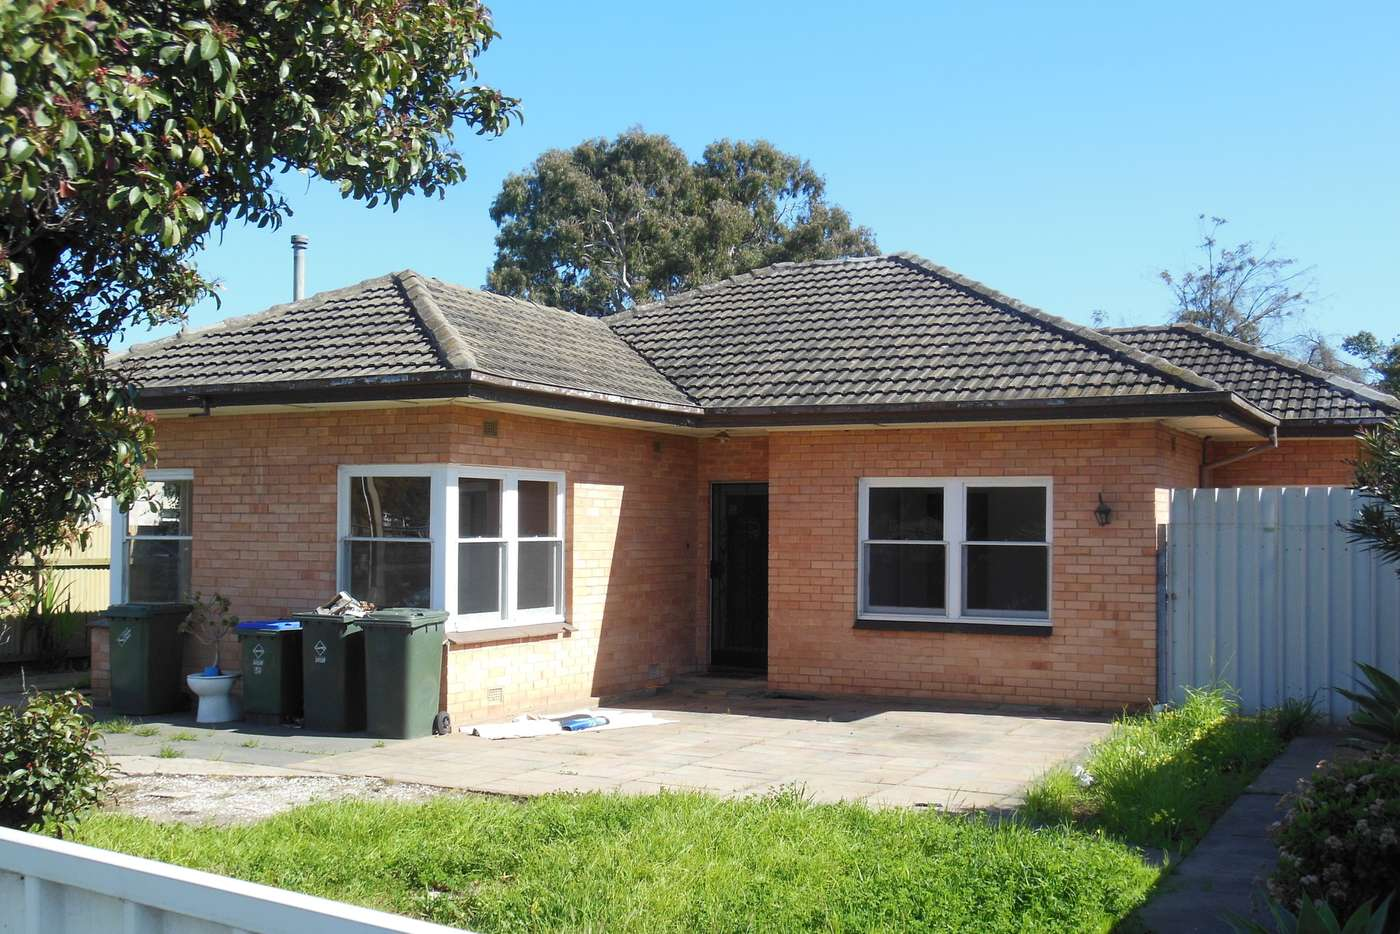 Main view of Homely house listing, 16 West Lakes Boulevard, Albert Park SA 5014